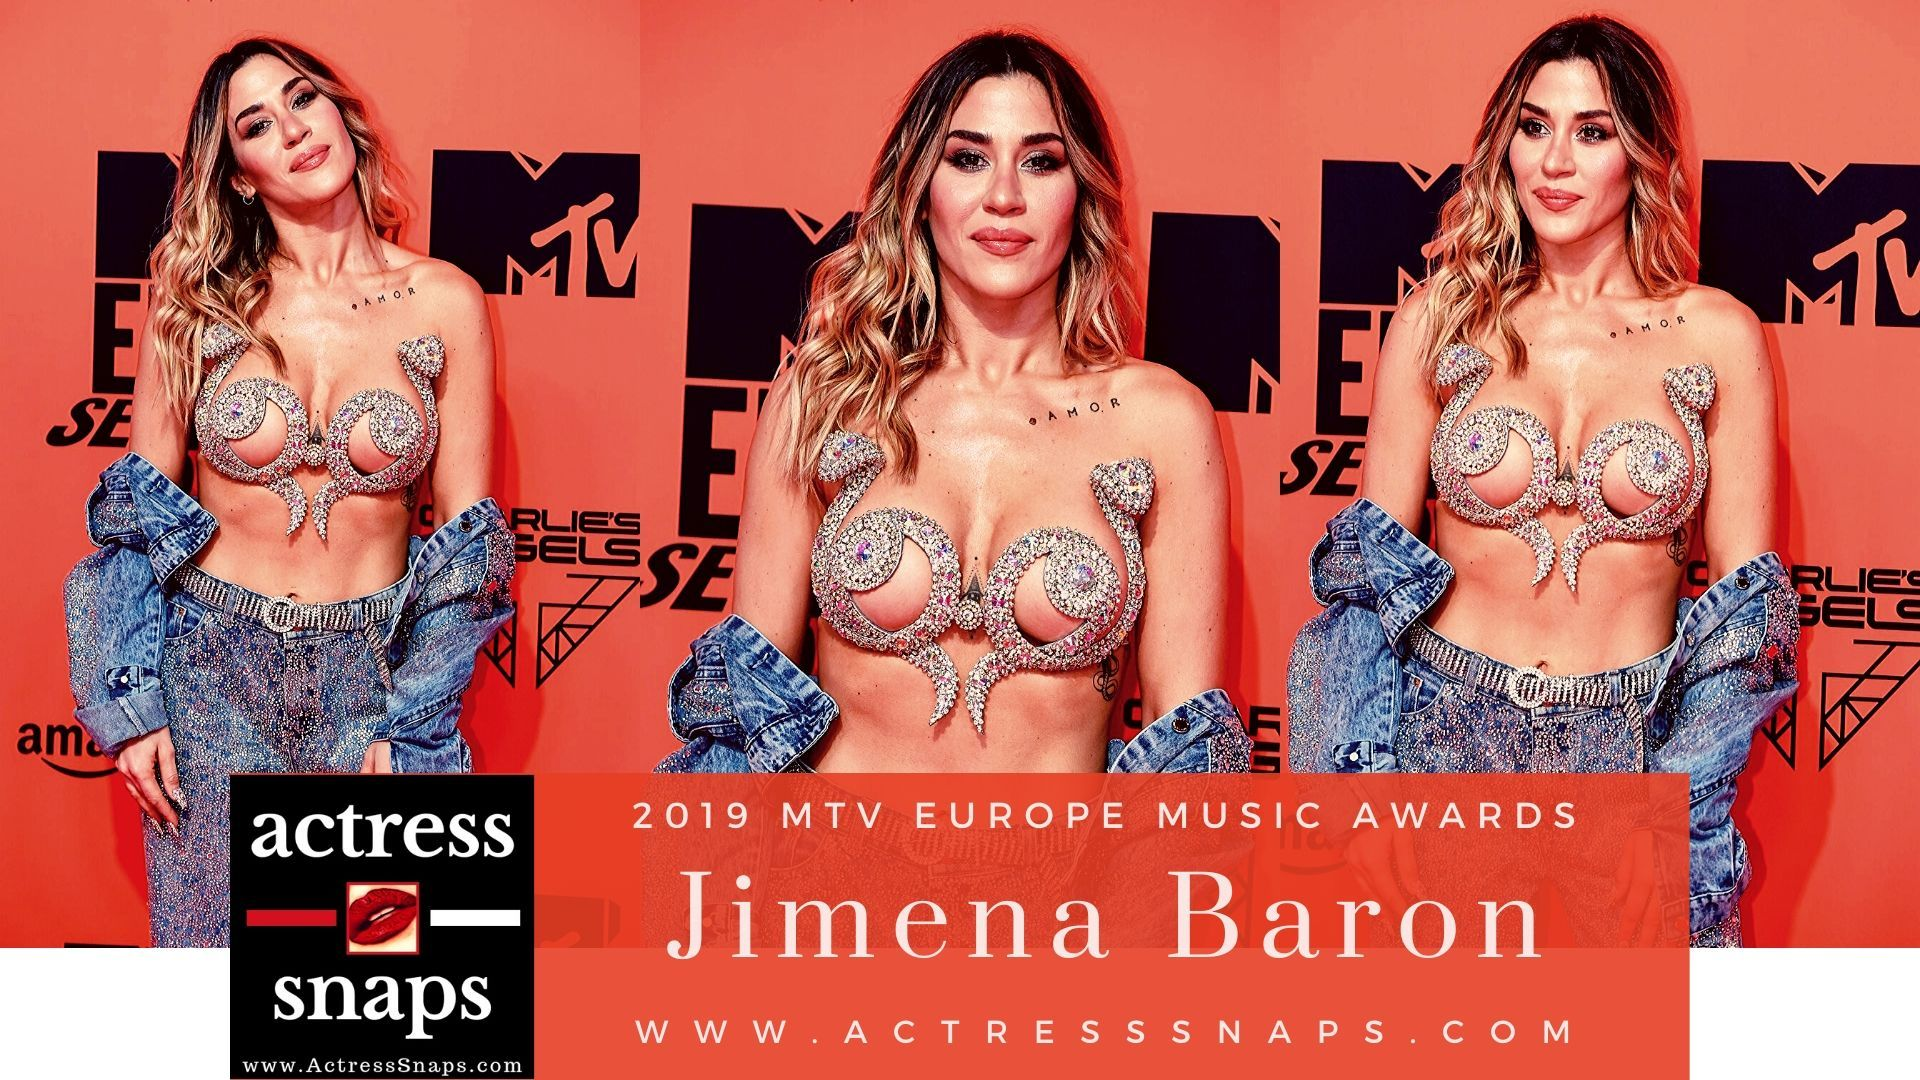 Jimena Baron  - 2019 MTV Europe Music Awards - Sexy Actress Pictures | Hot Actress Pictures - ActressSnaps.com